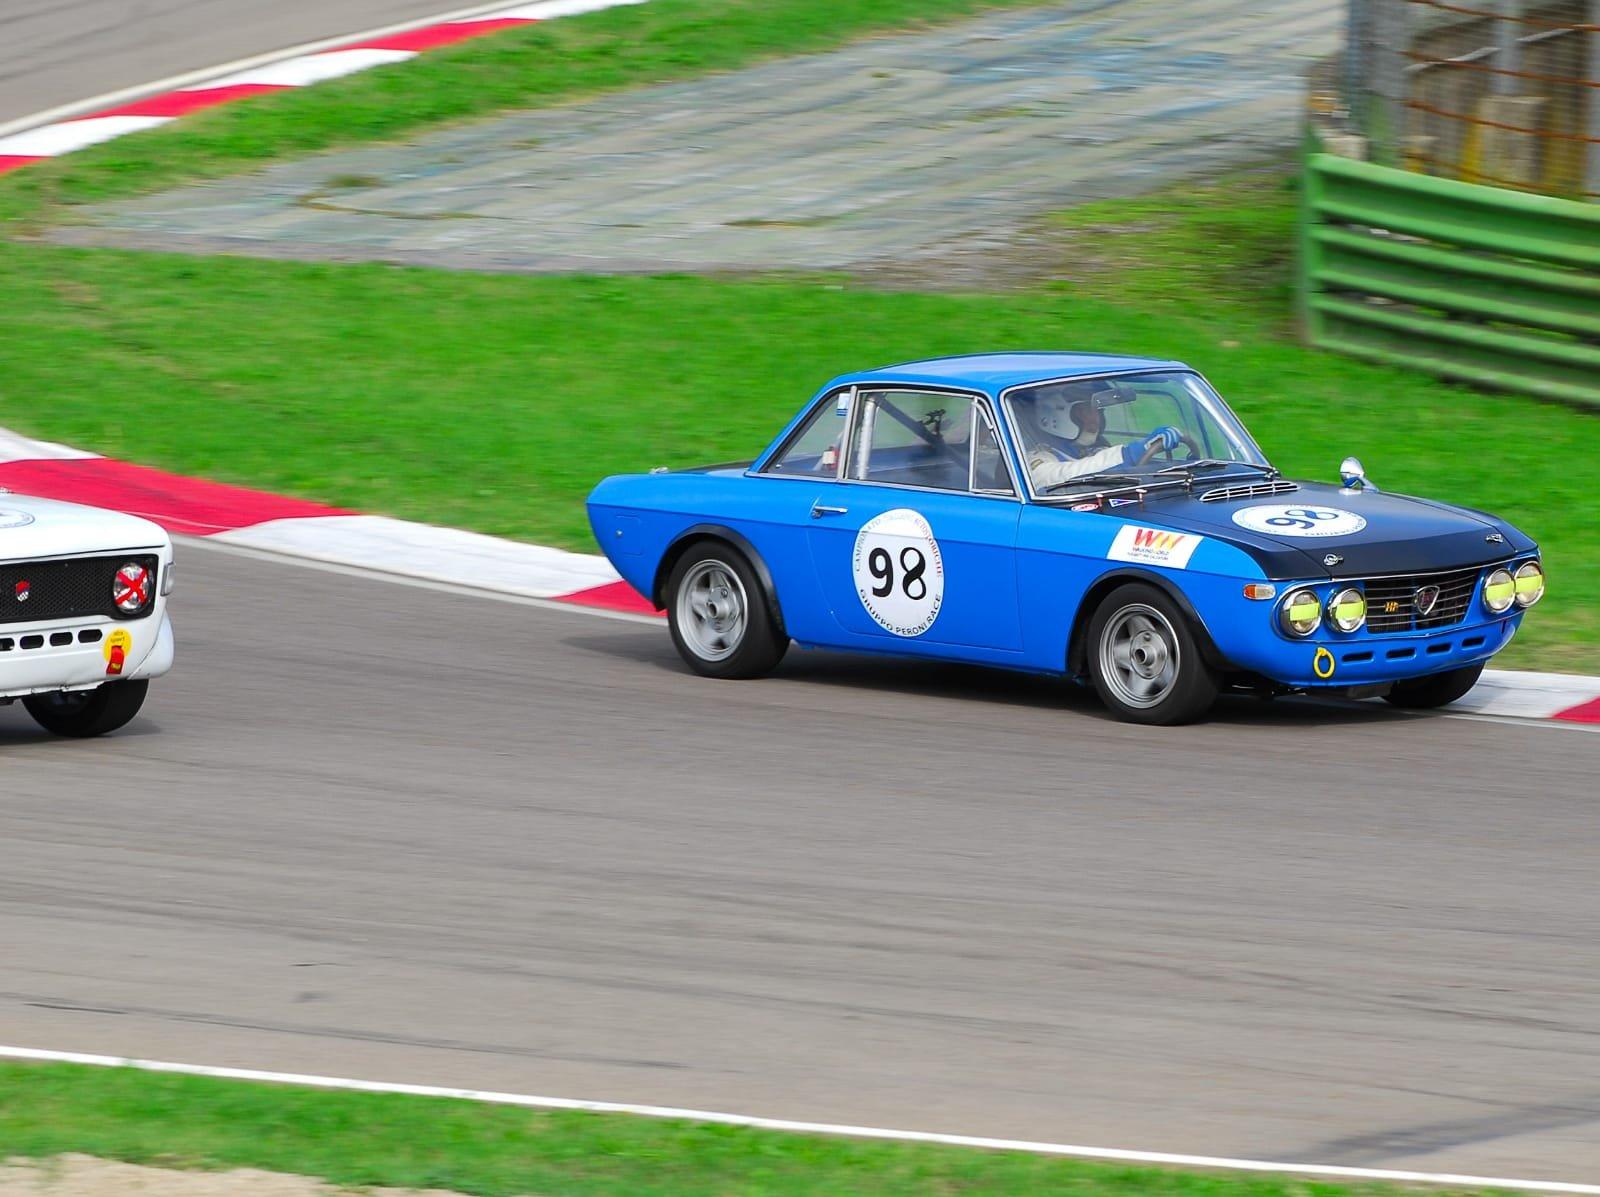 1970 Lancia fulvia rally for race gr4 For Sale (picture 3 of 4)